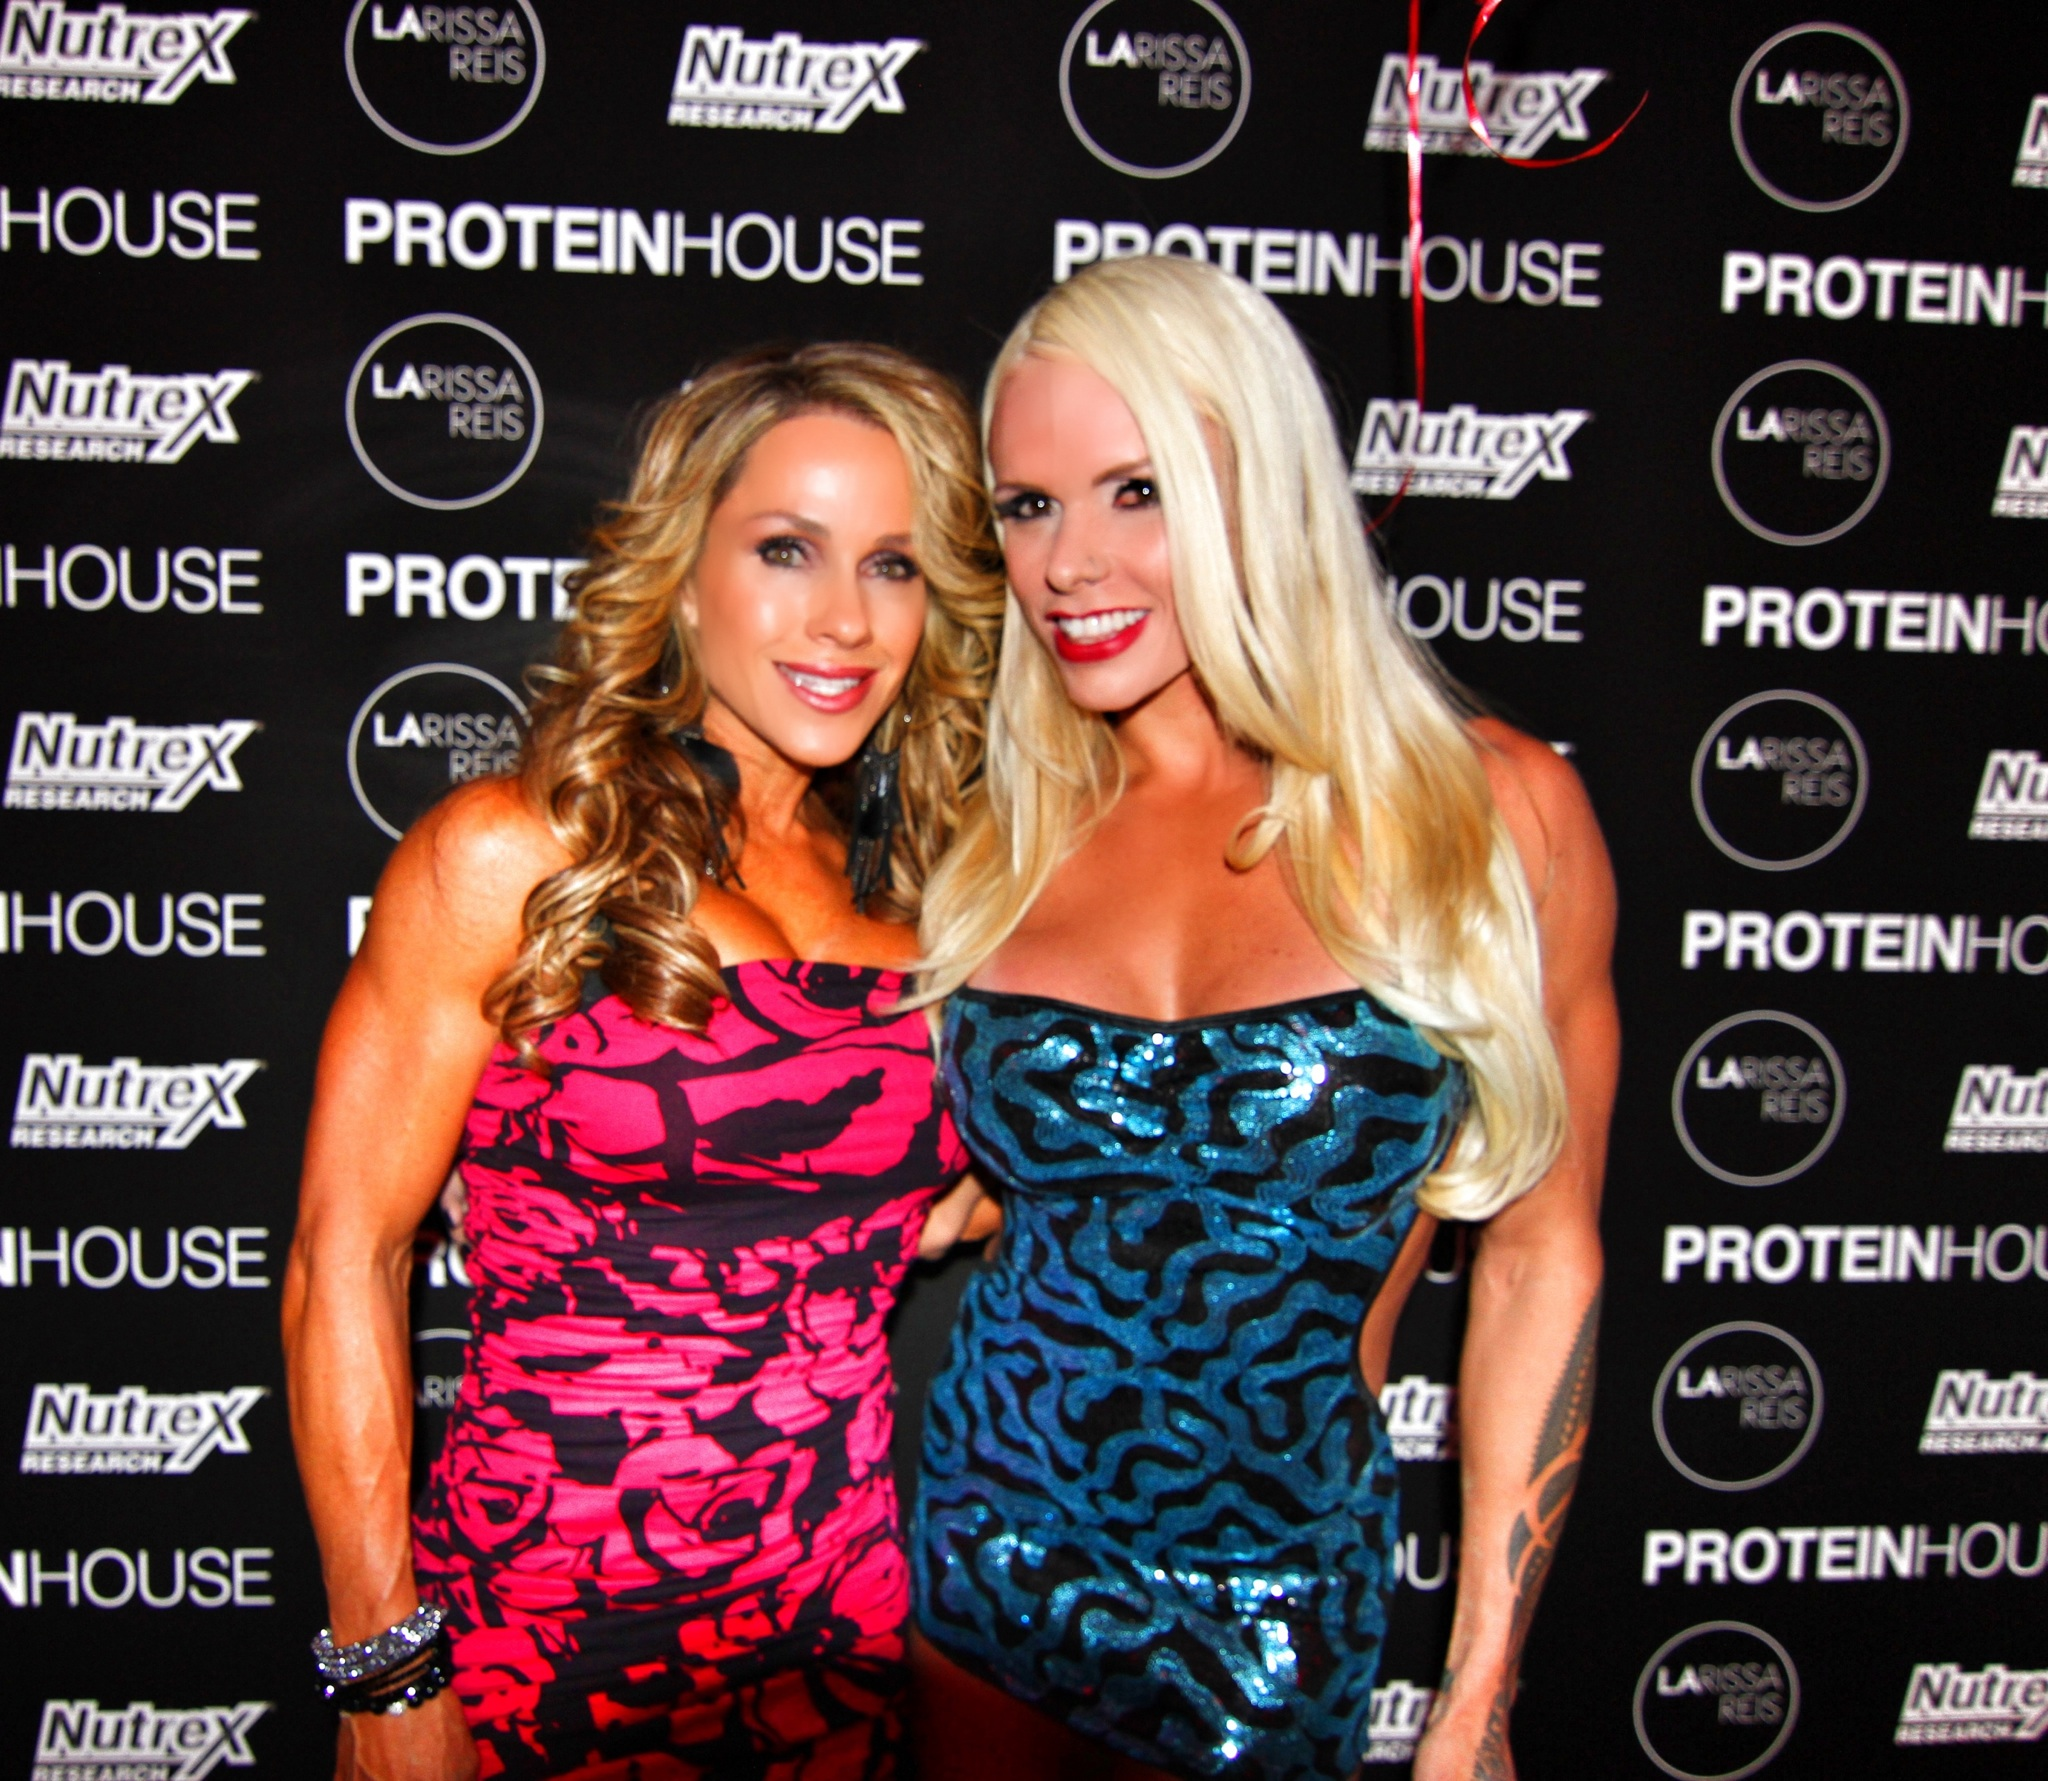 Grand Opening Protein House